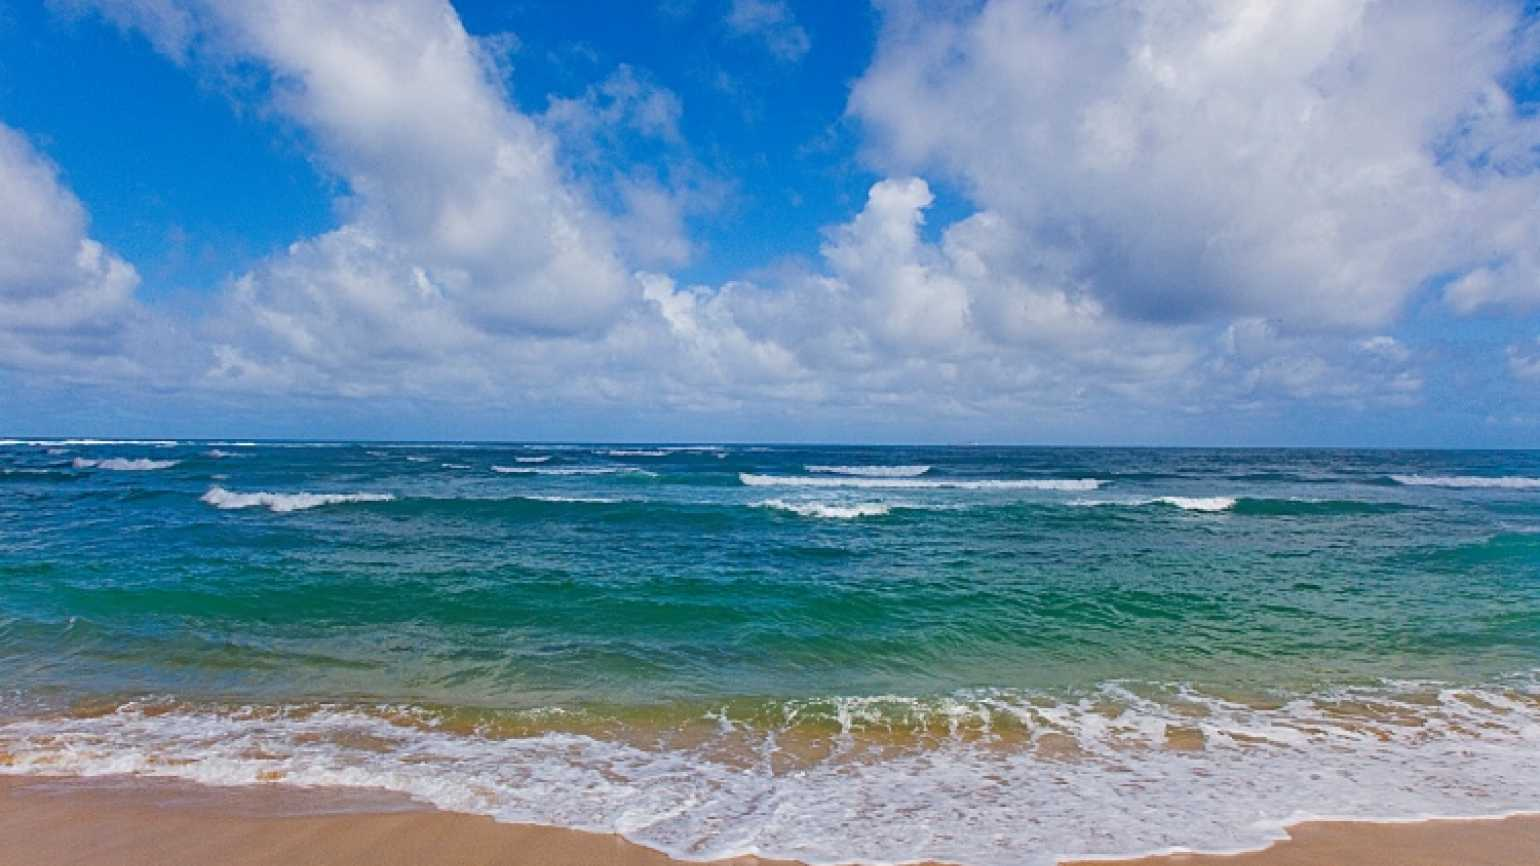 Beautiful beach beneath puffy clouds in blue sky. Kauai, Hawaii, USA